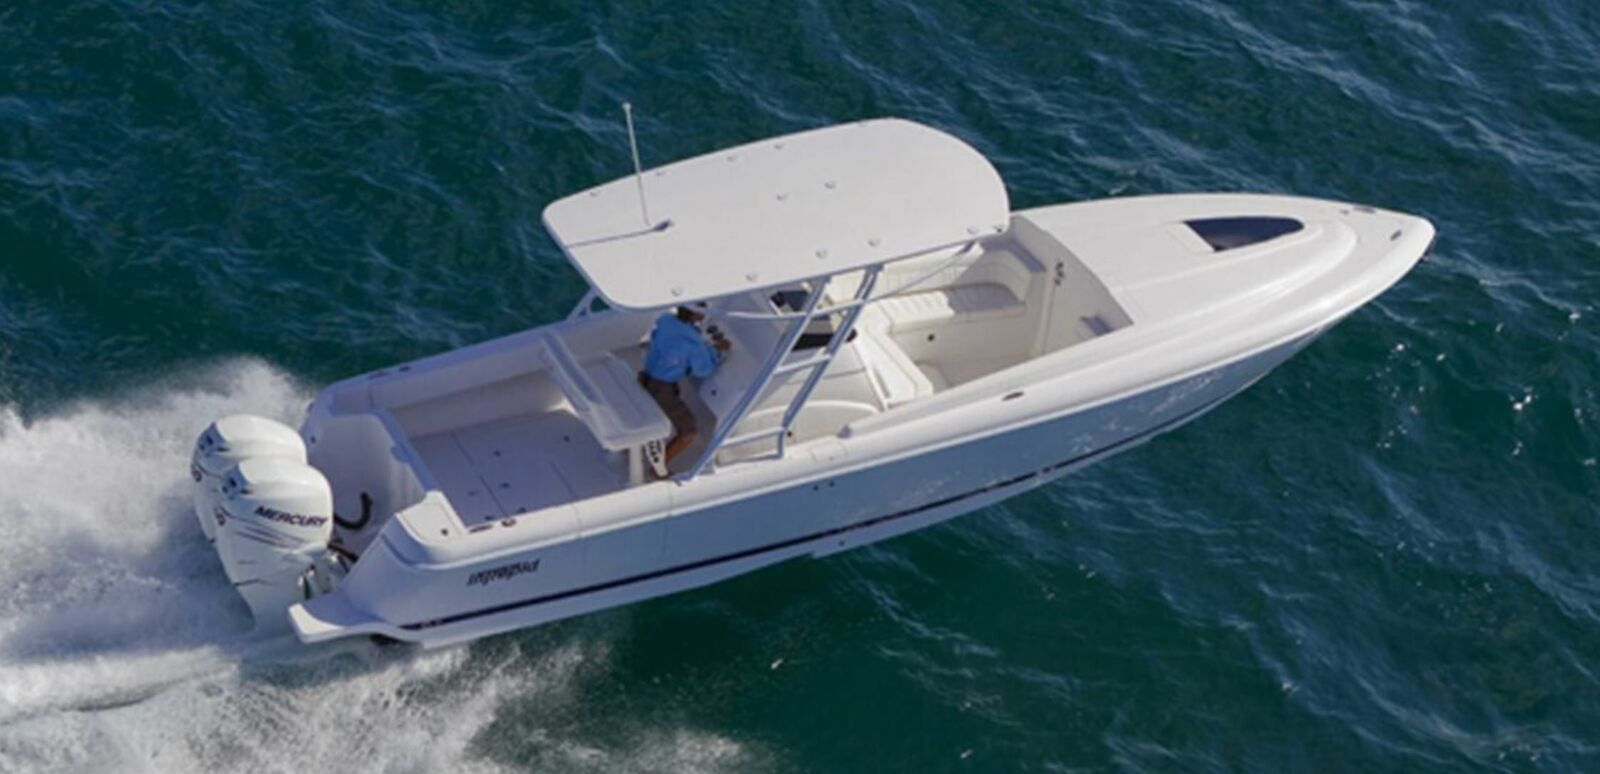 New consolidation in the luxury powerboat sector